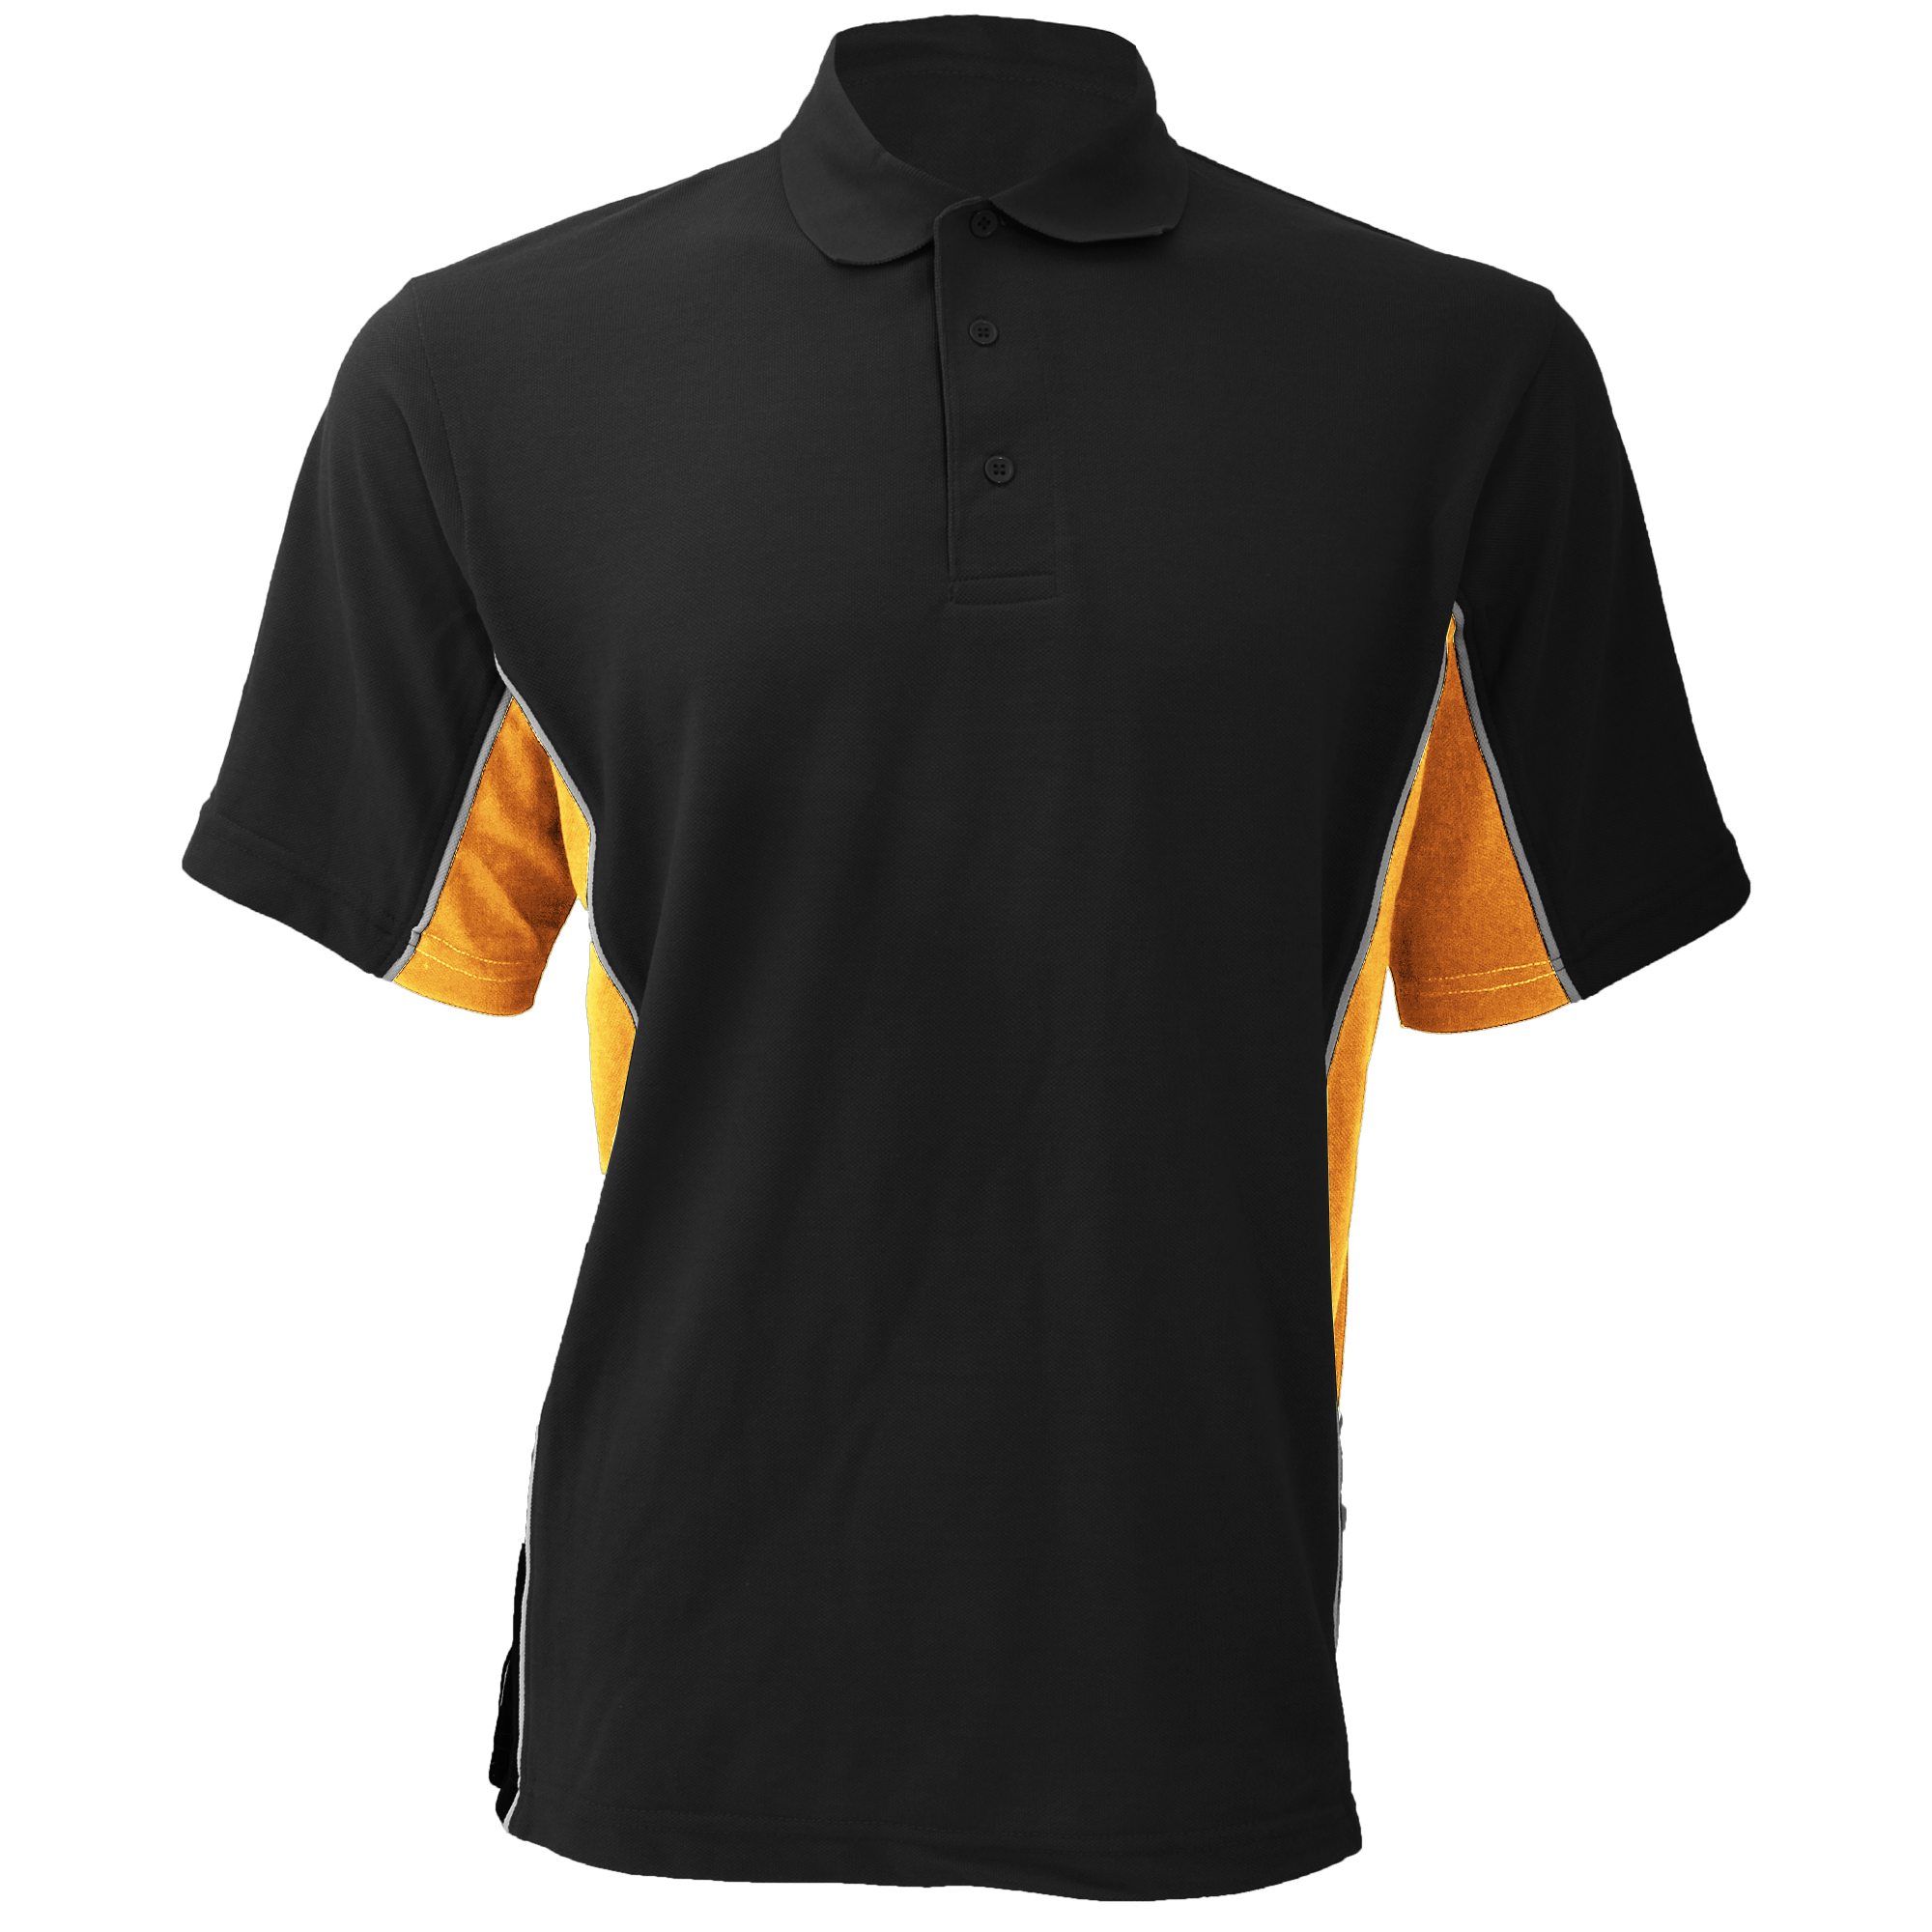 Gamegear® Mens Track Pique Short Sleeve Polo Shirt Top (XXS) (Black/Orange/White)